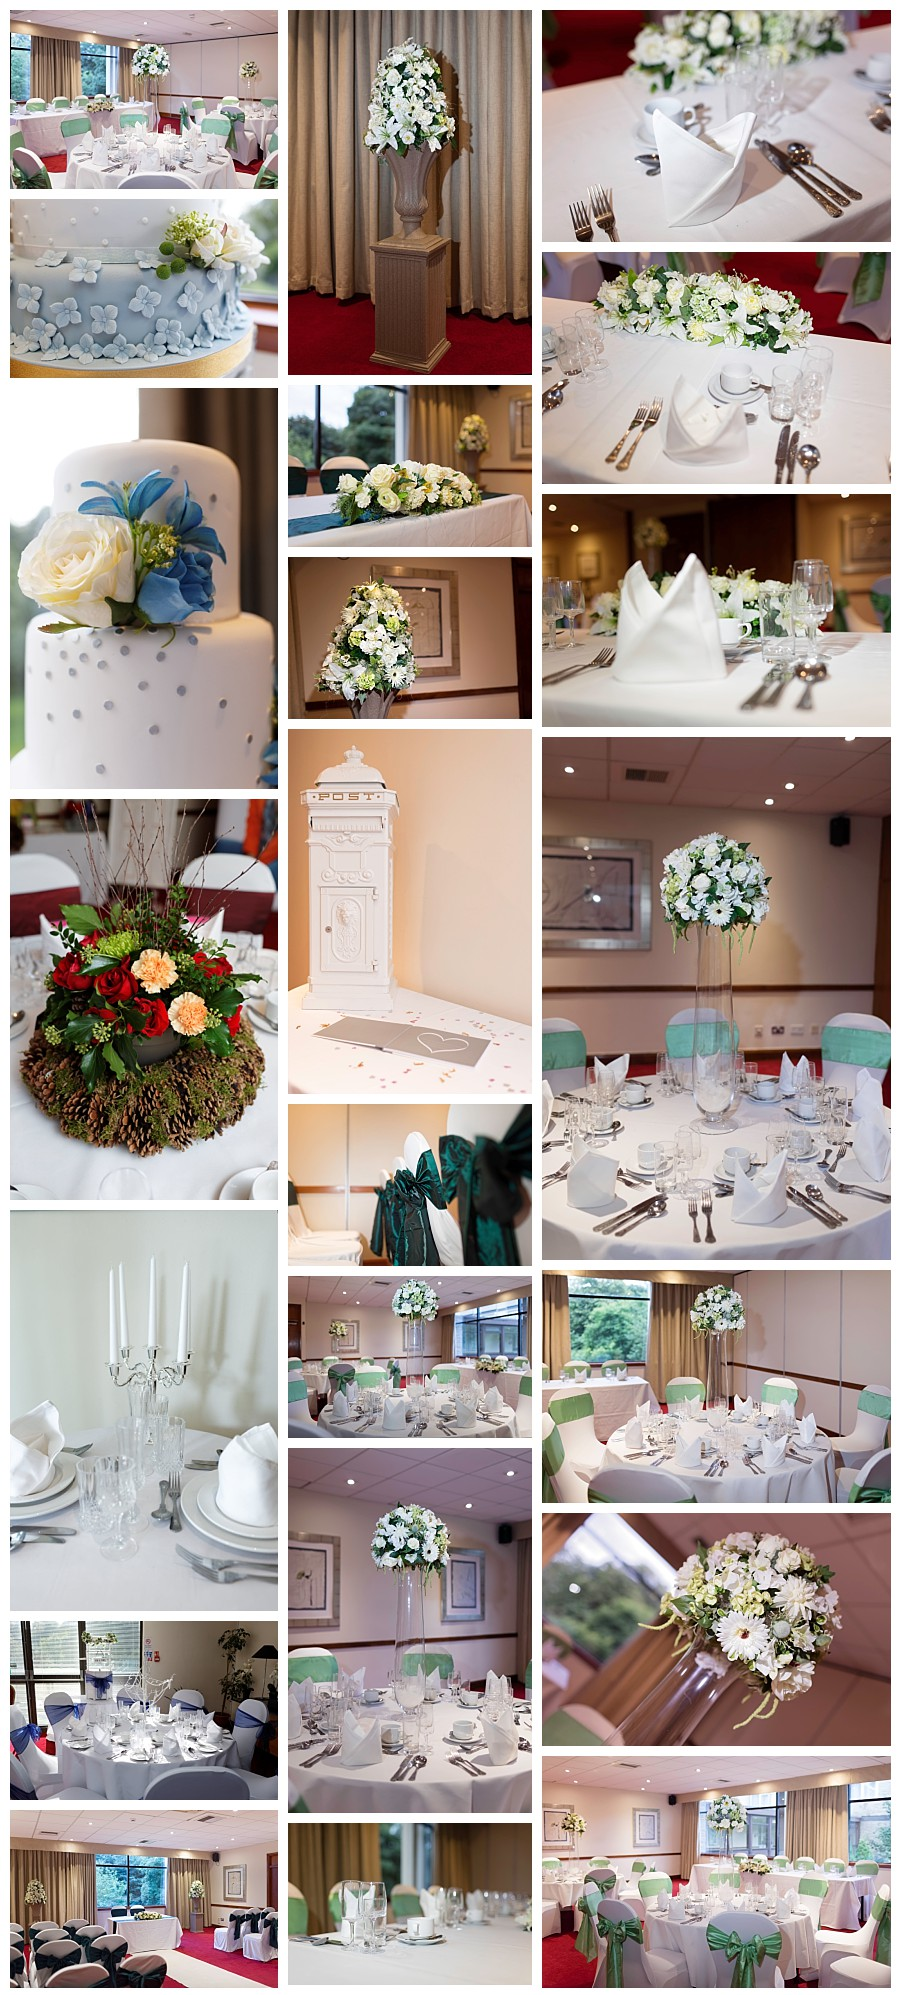 Brittannia hotel Bramhope LS16, photos of weddings, wedding venue Bramhope